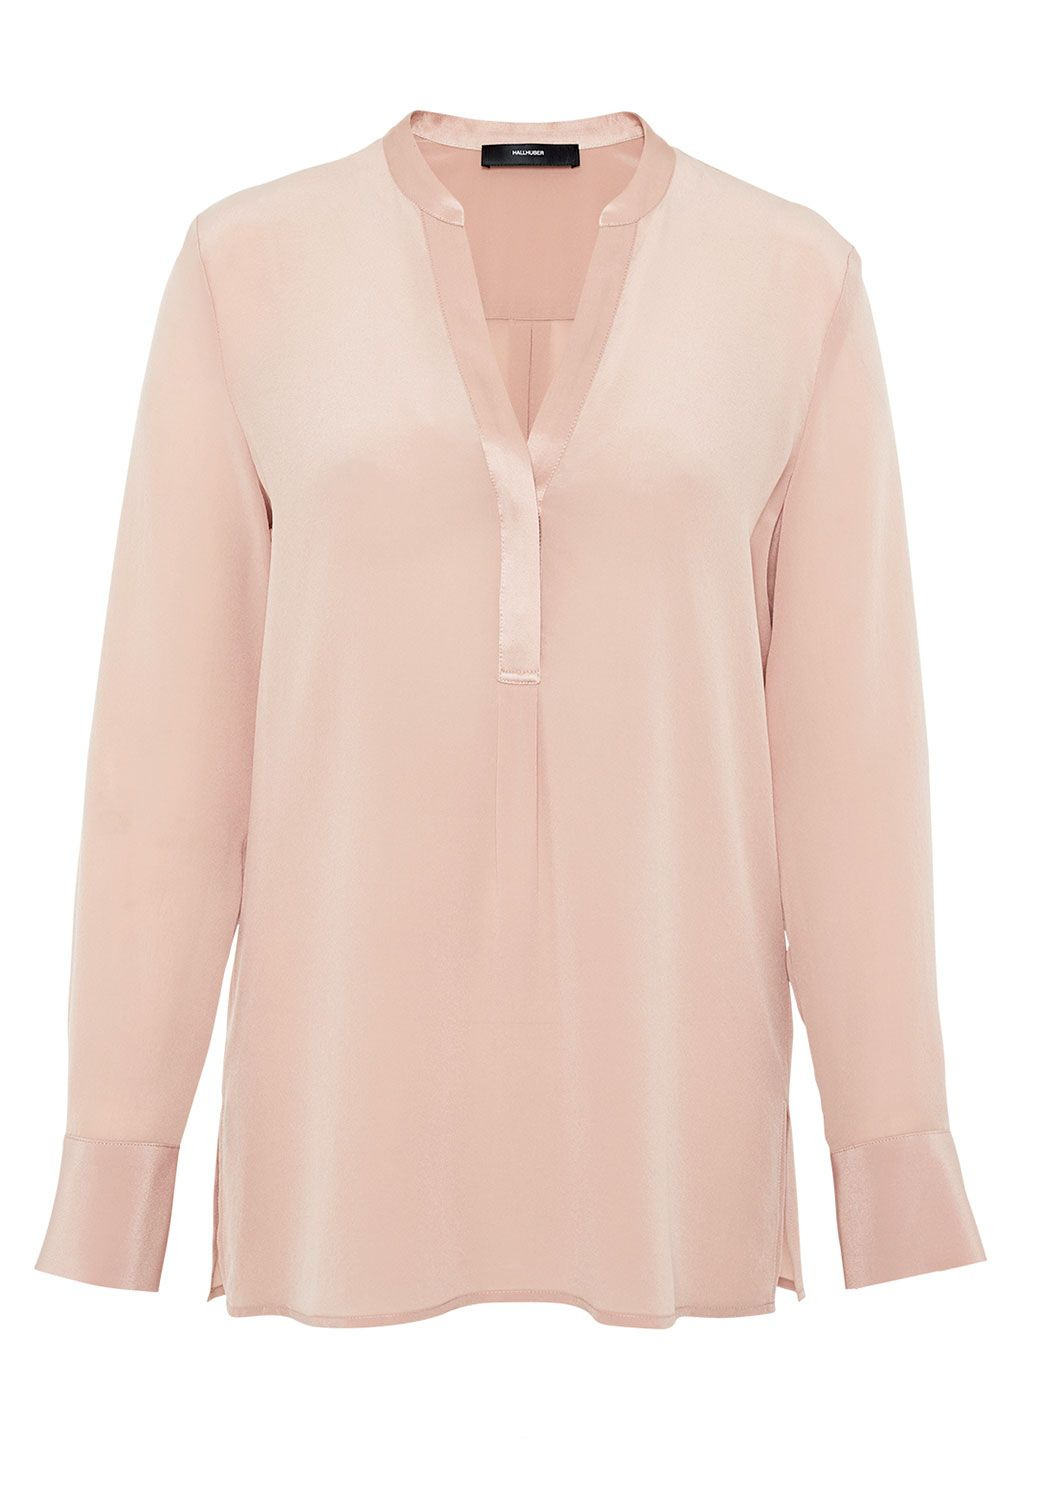 Hallhuber Tunic blouse made of silk, Pink